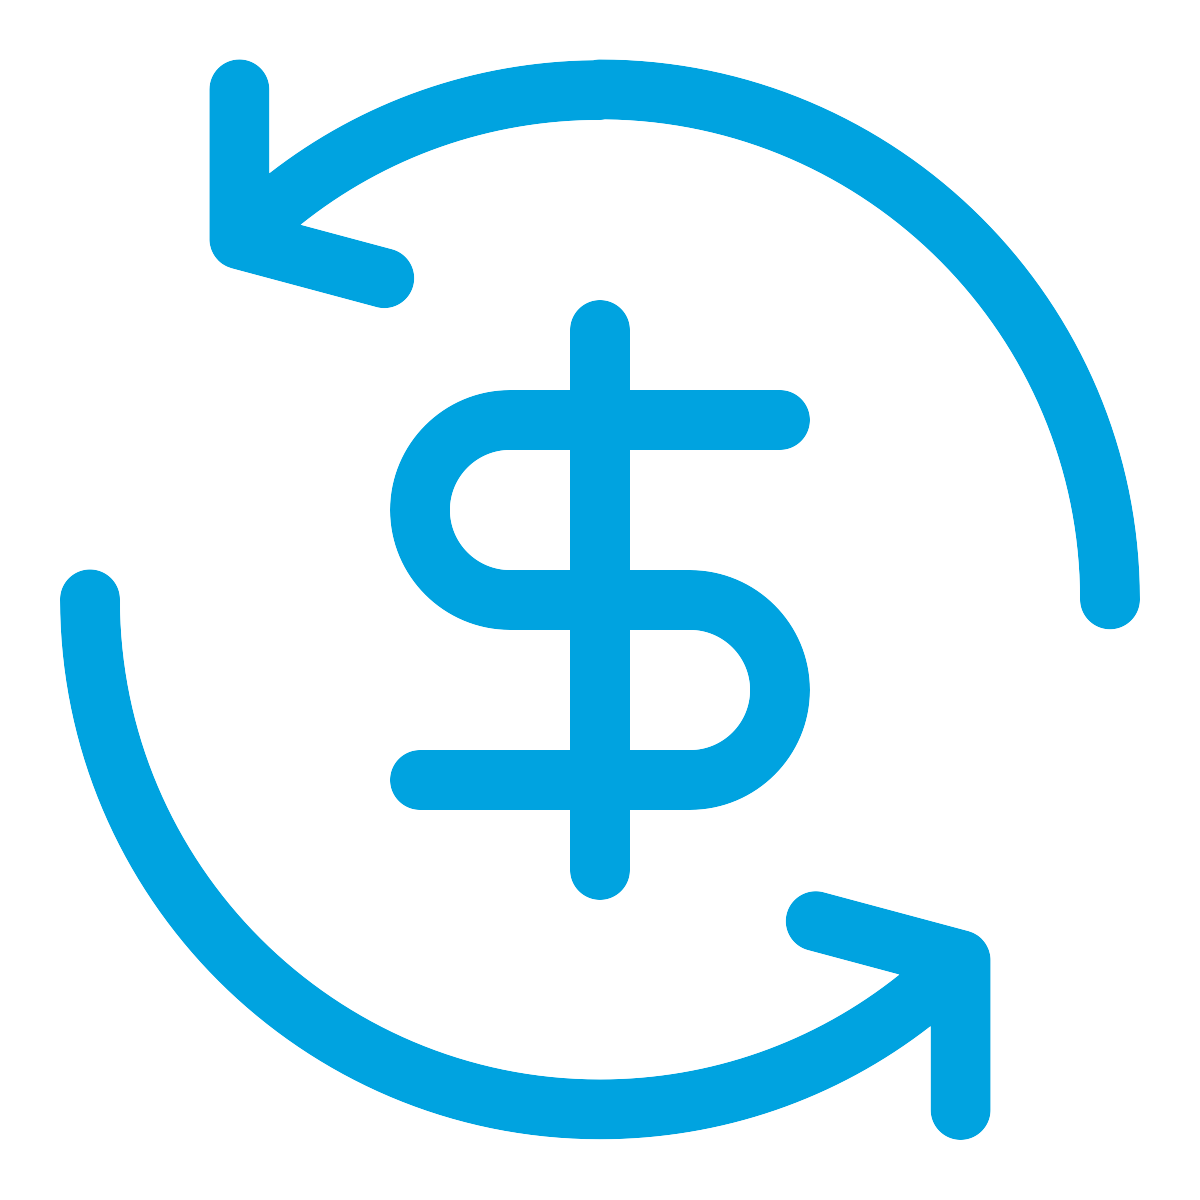 Dollar Sign Surrounded by Two Curved Arrows Forming a Circle